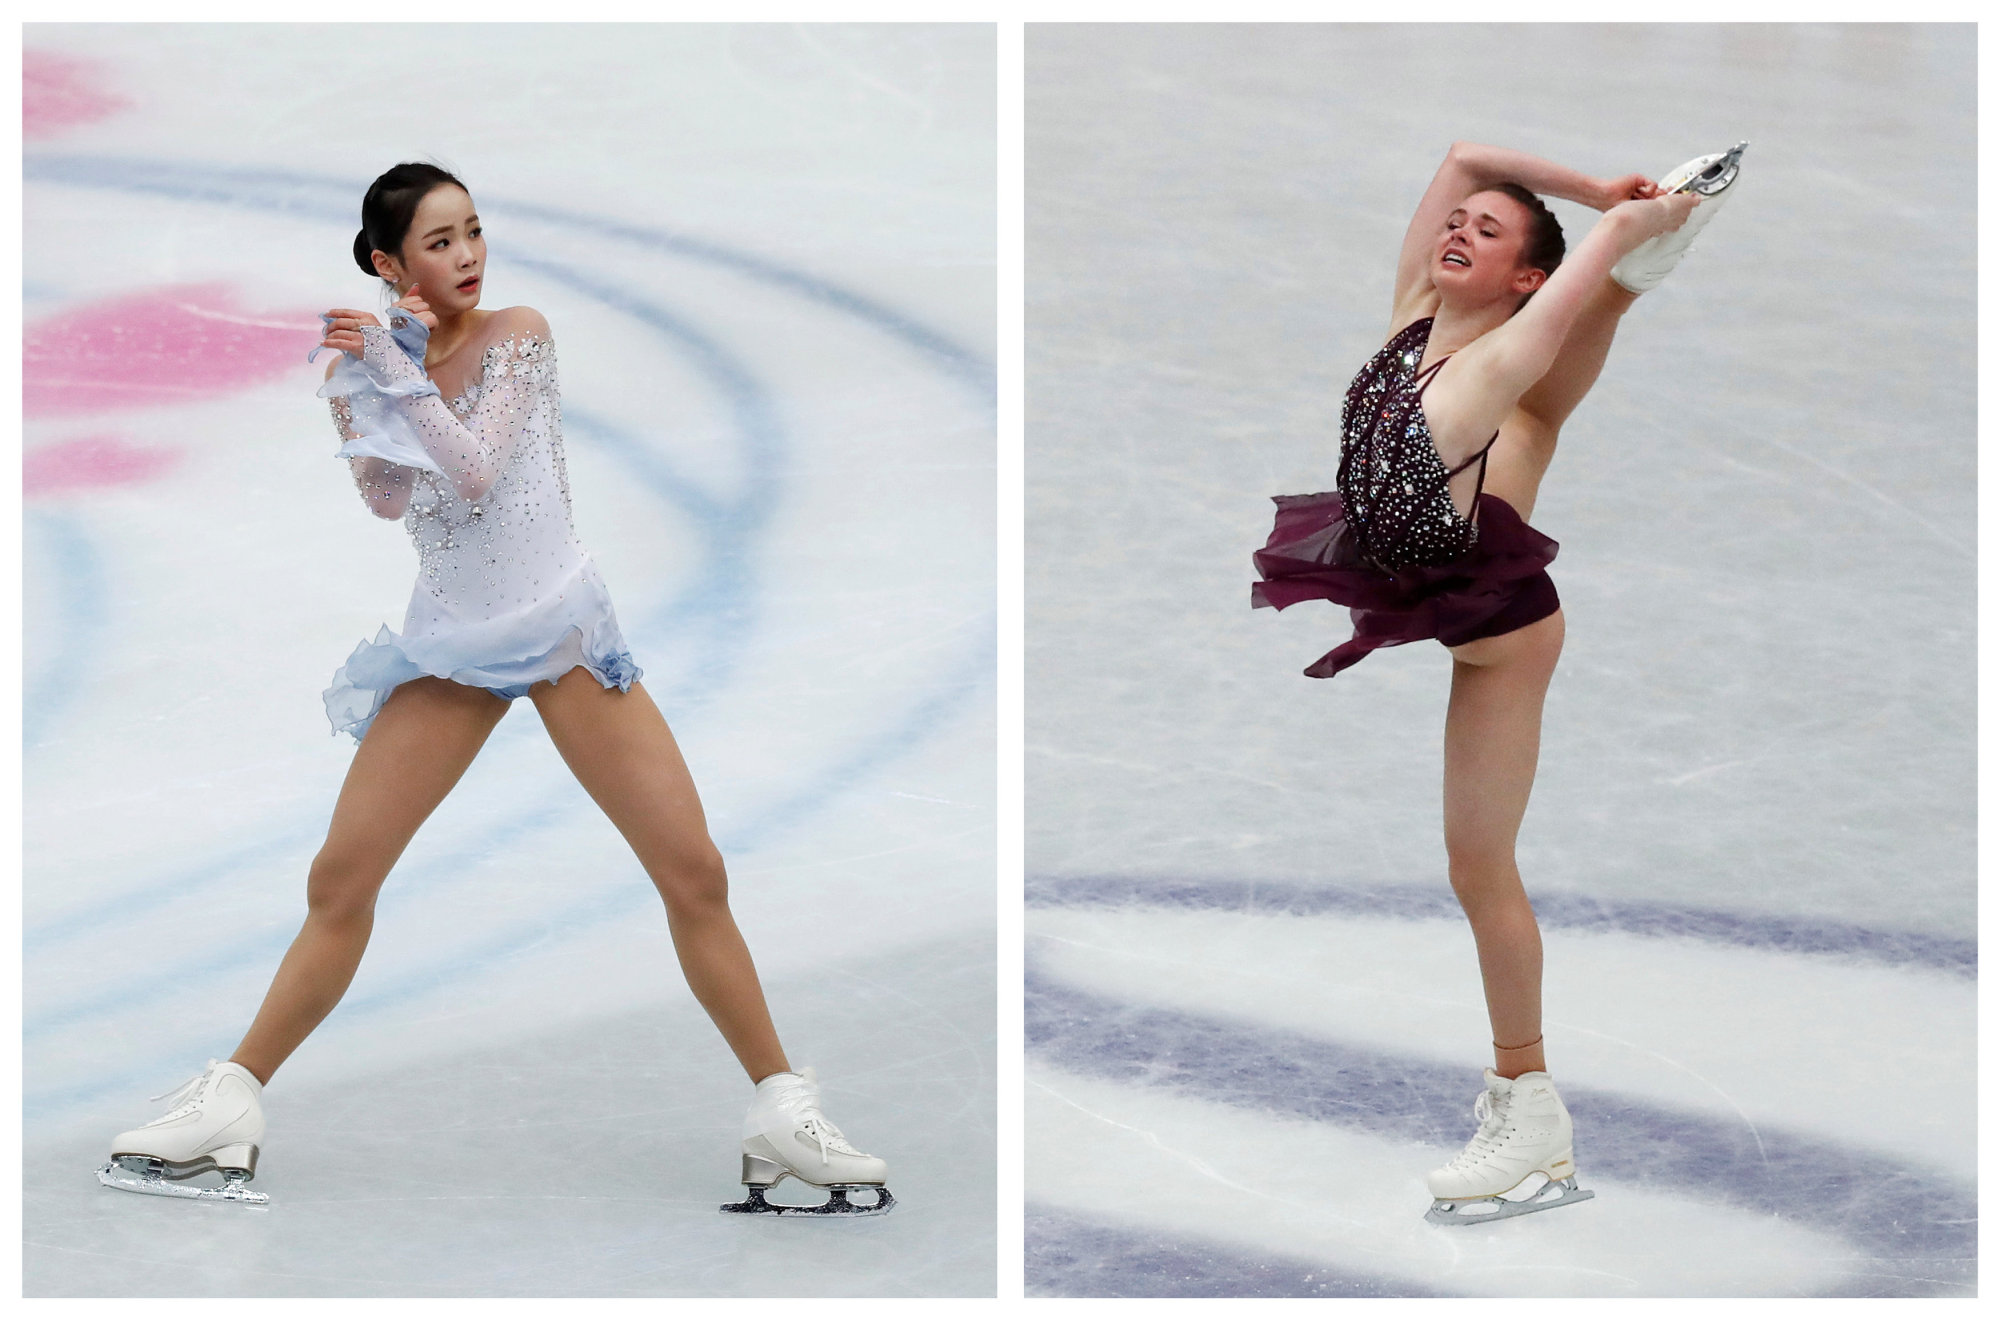 South Korea's Lim Eun-soo (left) and Mariah Bell of the United States are seen at this week's world championships in Saitama. | REUTERS